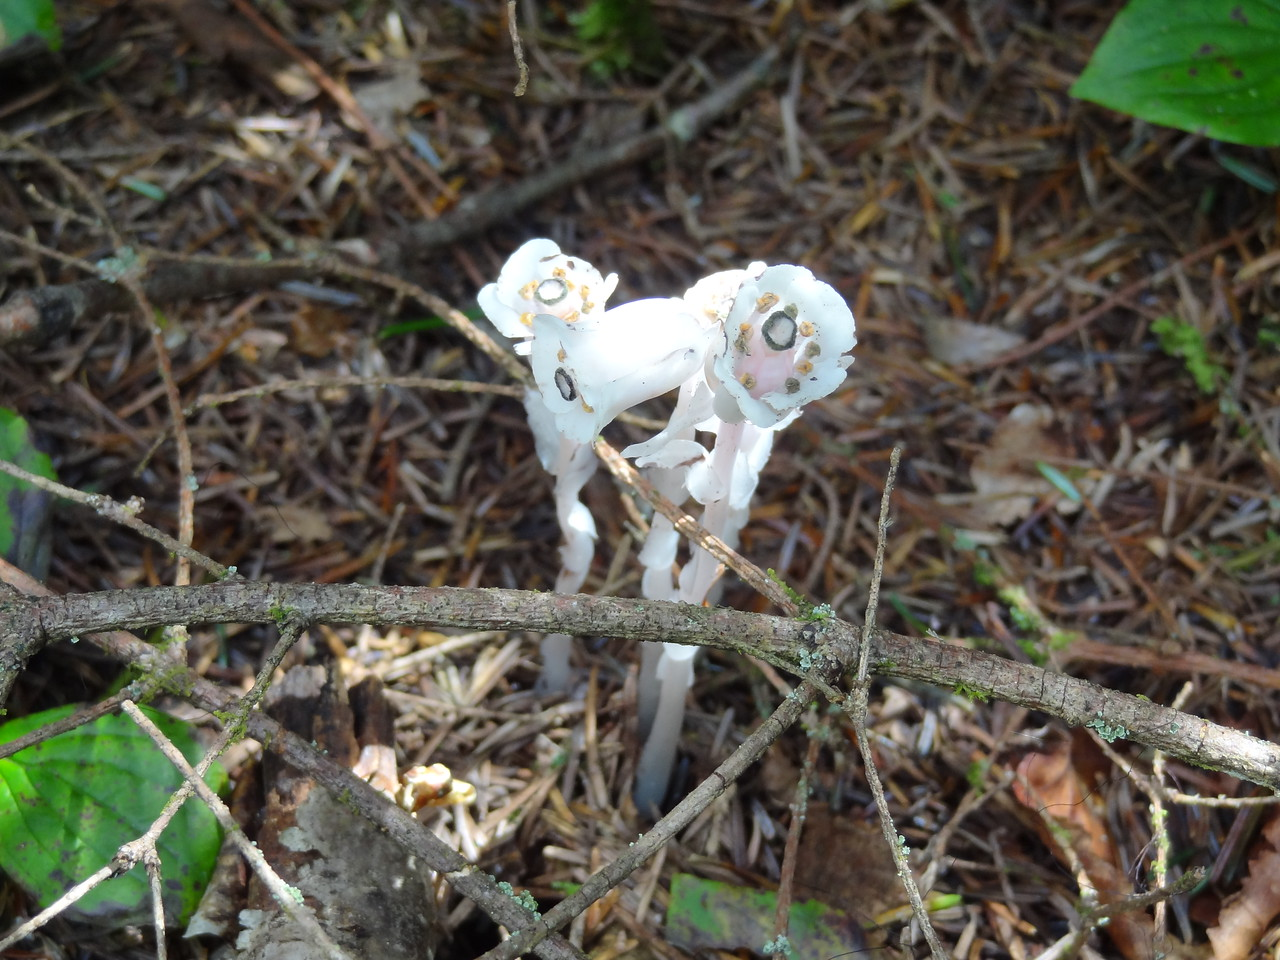 Plant Lore:<br /> As a saprophytic or parasitic plant, Indian Pipe derives it's nutrients indirectly from the roots of green plants. The source of nourishment comes from a subsurface mycorrhizal fungi which connects to the host plant. The fungi act as the middleman in the process of acquiring nutrients from the host and transporting it to the Indian Pipe. <br /> The flower has the bisexual parts, like most other flowers, and is pollinated by insects. Once pollinated, the plant dries up and turns dark in color. The nodding flower turns upright and becomes the fruit capsule to hold and disperse the seeds. This stalk can remain through winter and into the next summer. Once the seeds are dispersed they quickly form the mycorrhizal fungi connection.